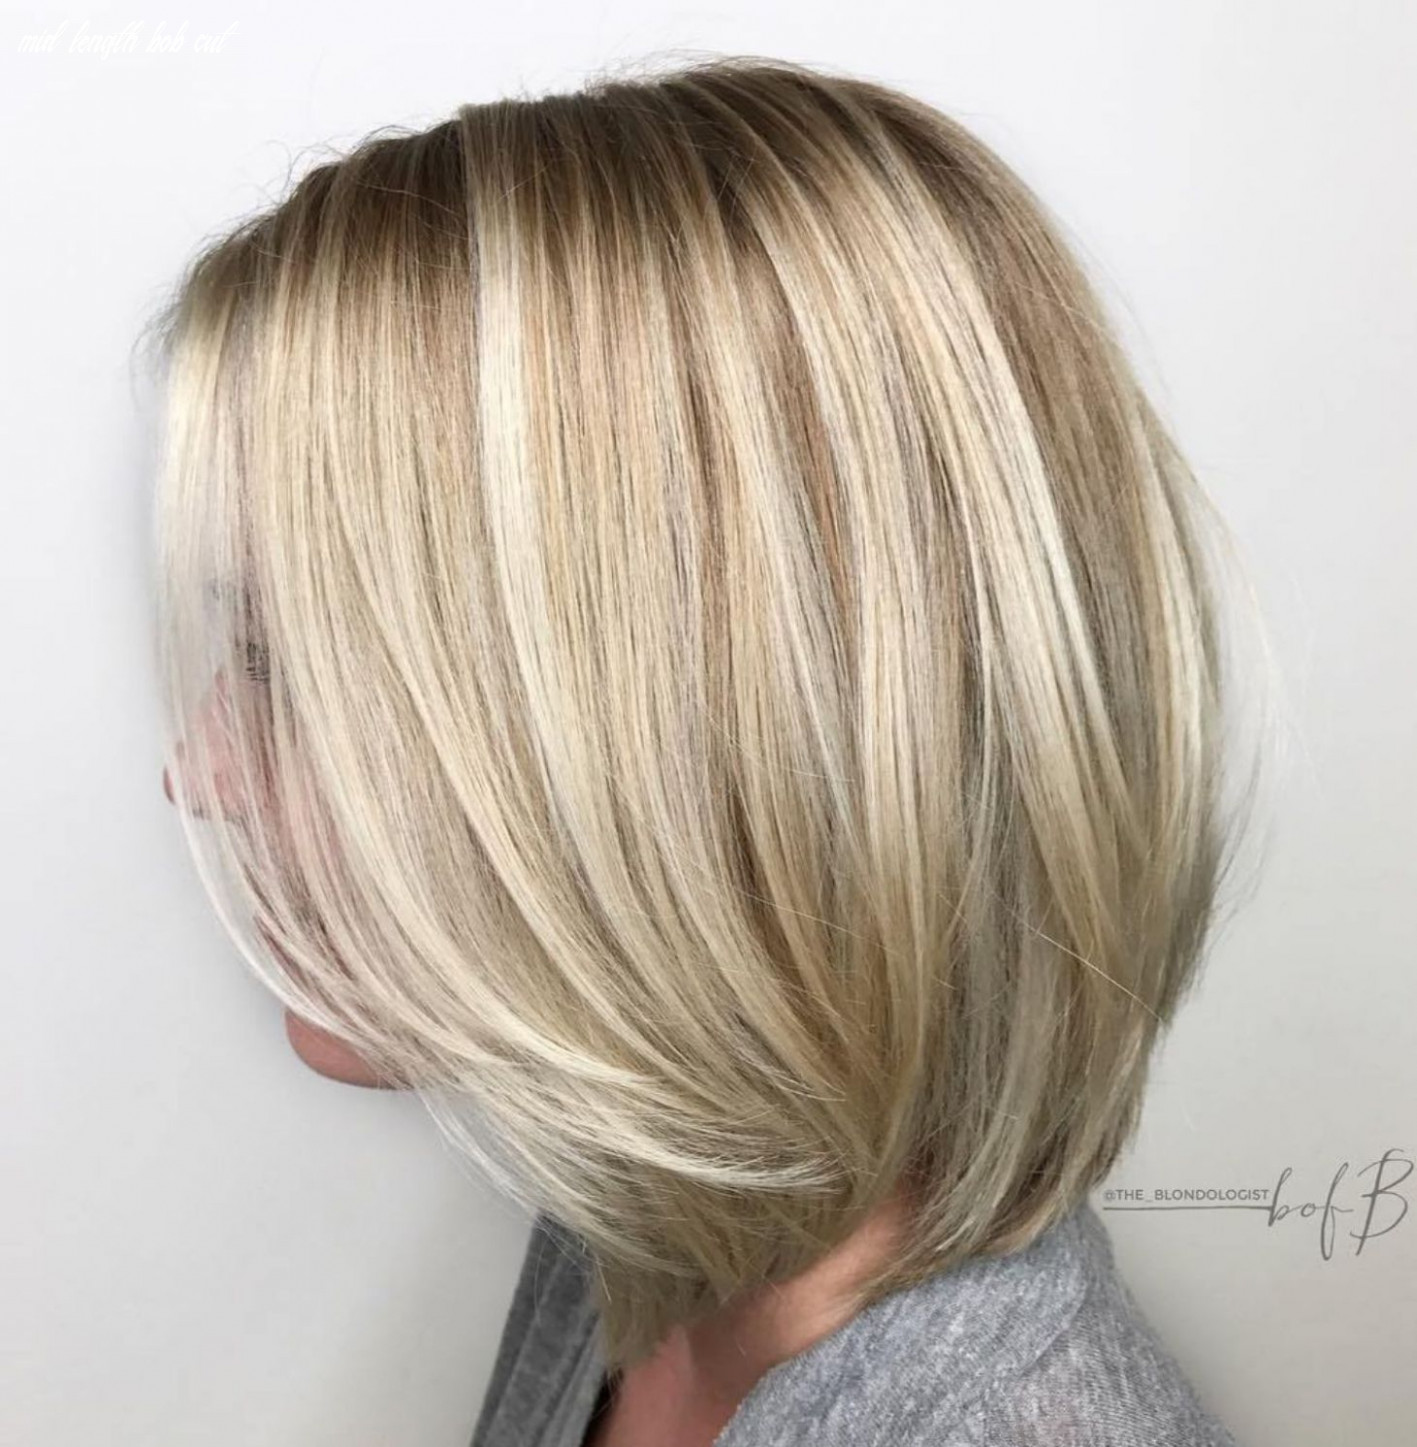 9 winning looks with bob haircuts for fine hair | bob haircut for